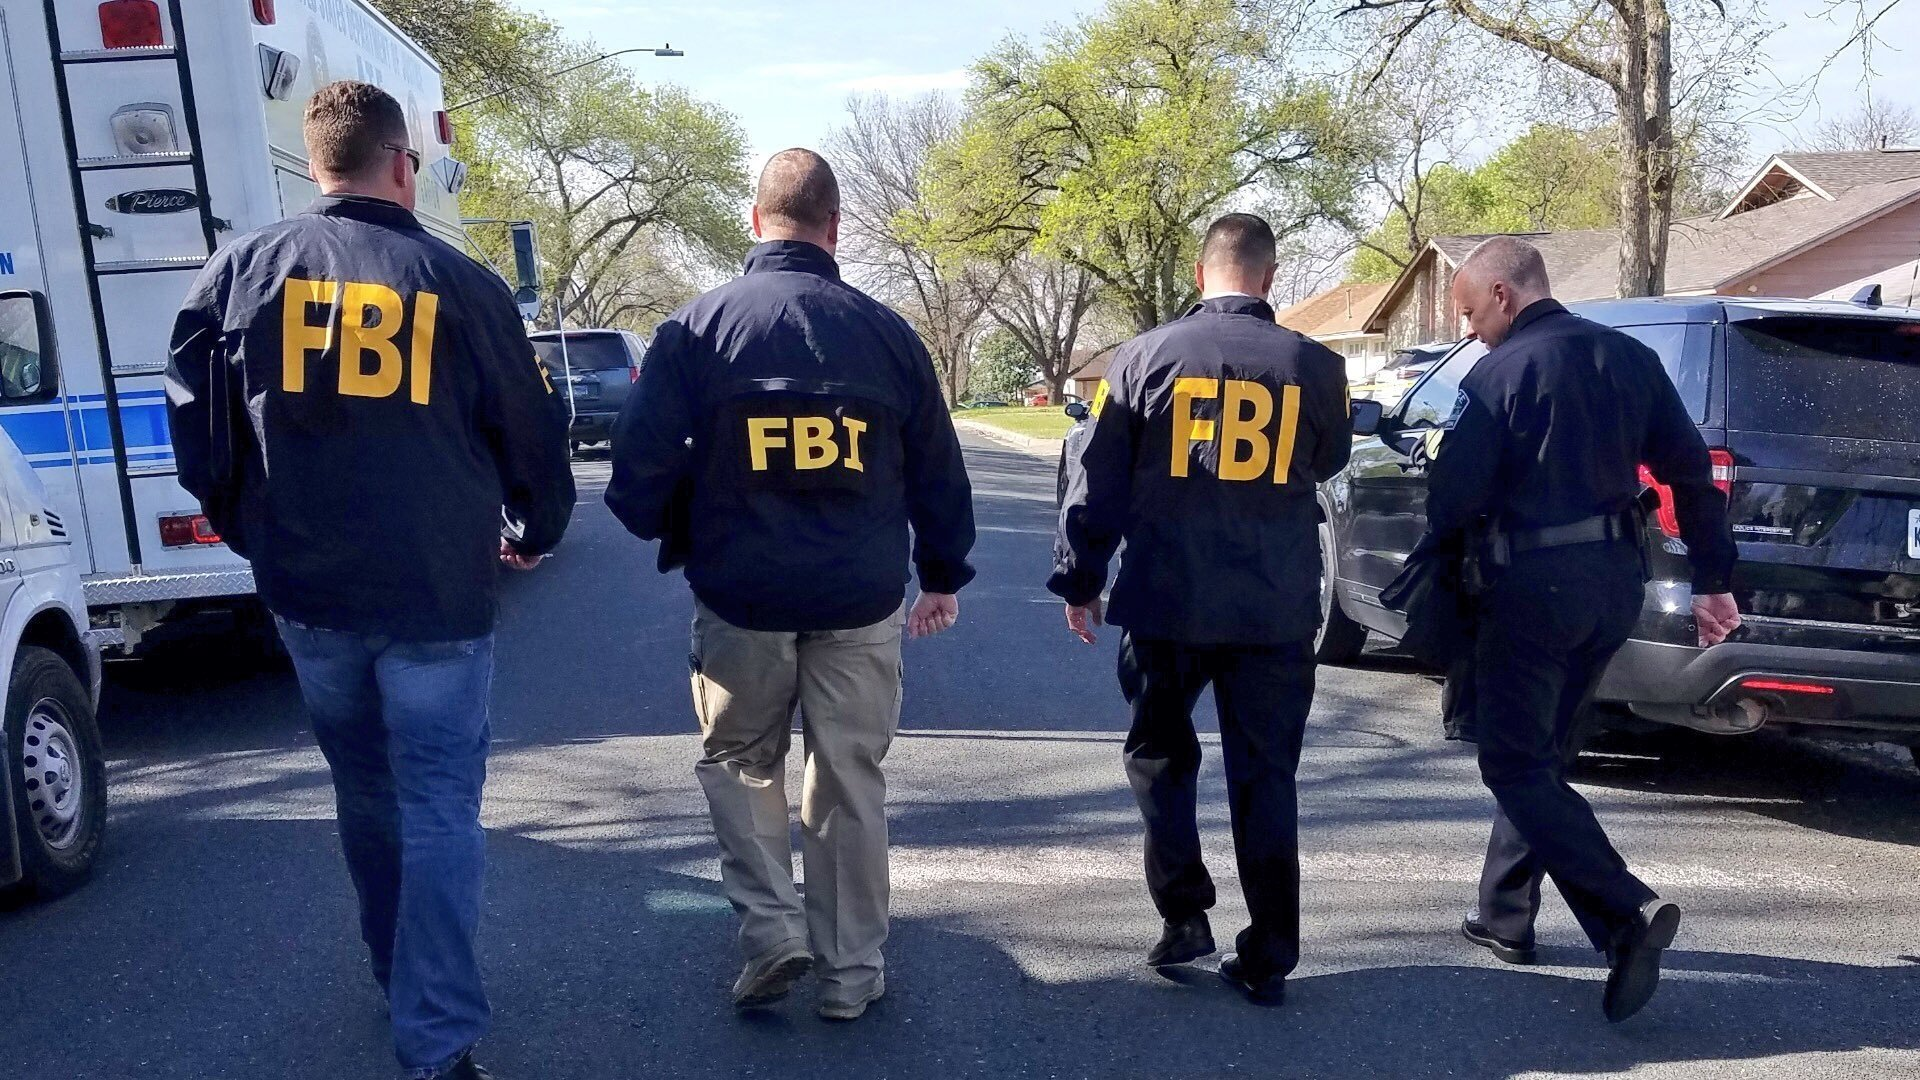 Investigators probe whether Texas bomber had help